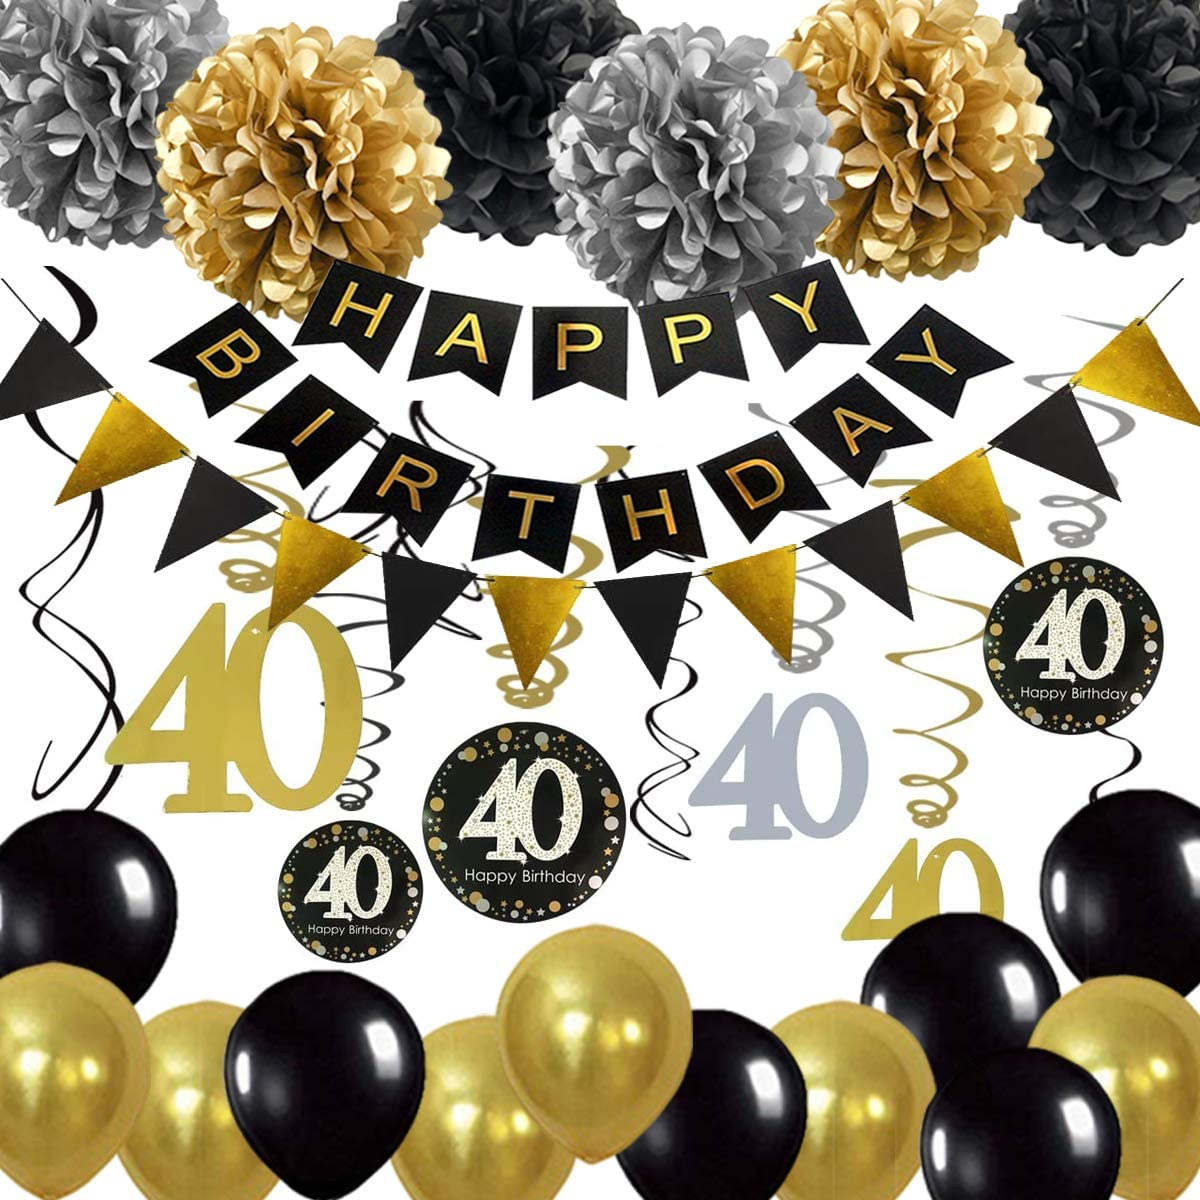 40th Birthday Decoration, 40 Hanging Swirl, Happy Birthday Banner, Balloons for 40 Years Old Birthday Party Supplies Decoration